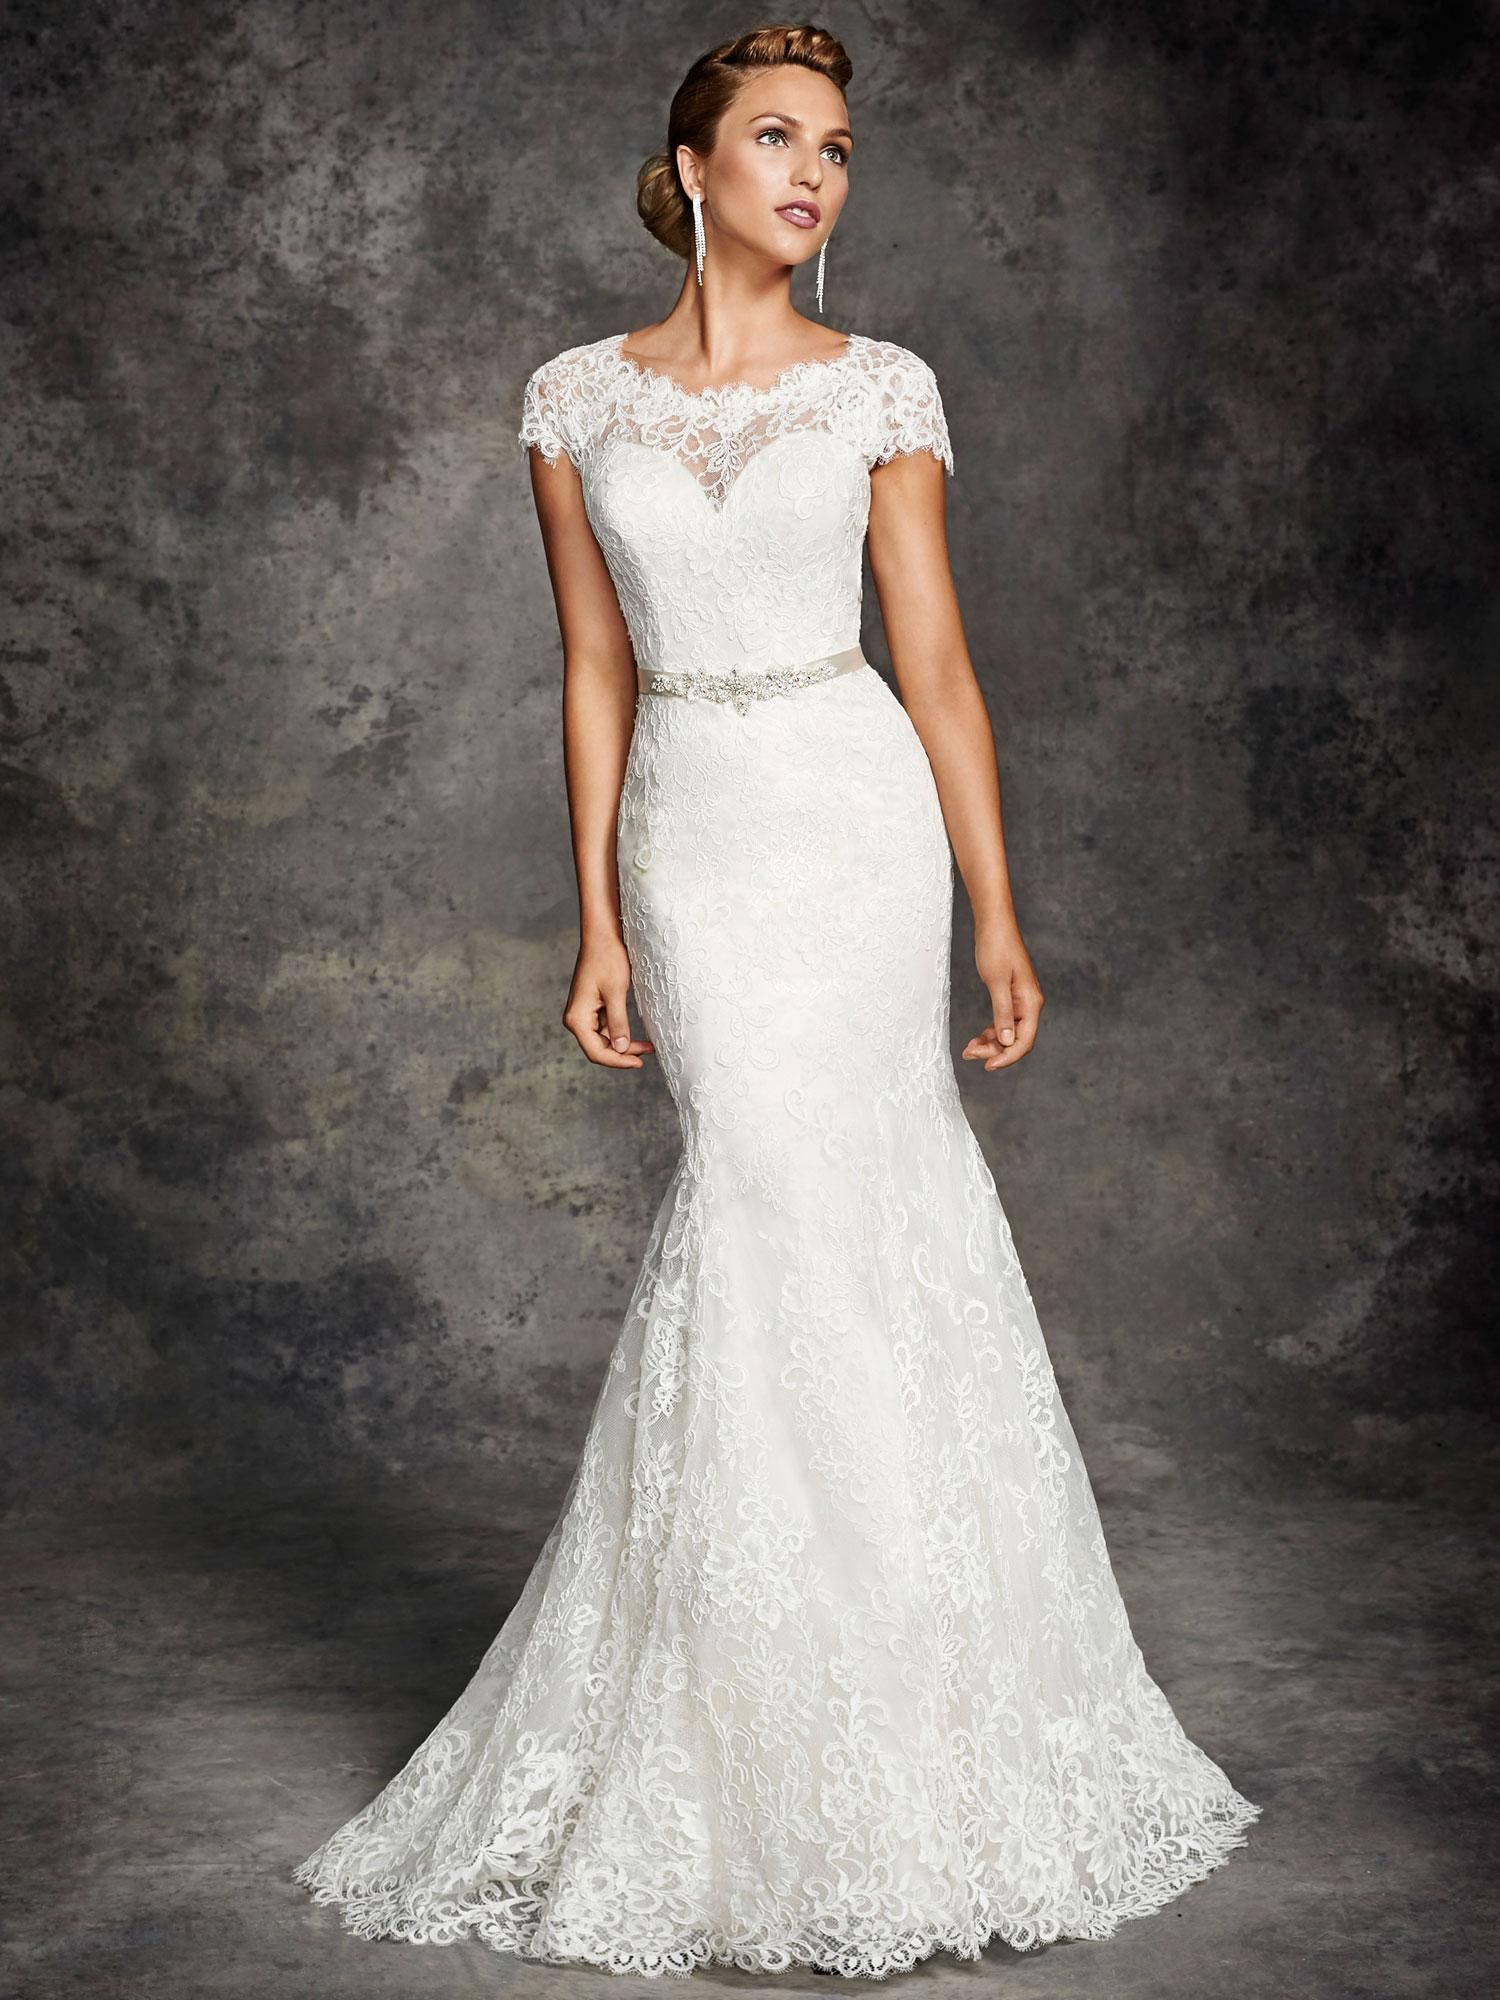 Lace mermaid wedding gowns with long trains  Ella Rosa  Spring Wedding Dresses for Chapel Wedding Jewel Neck